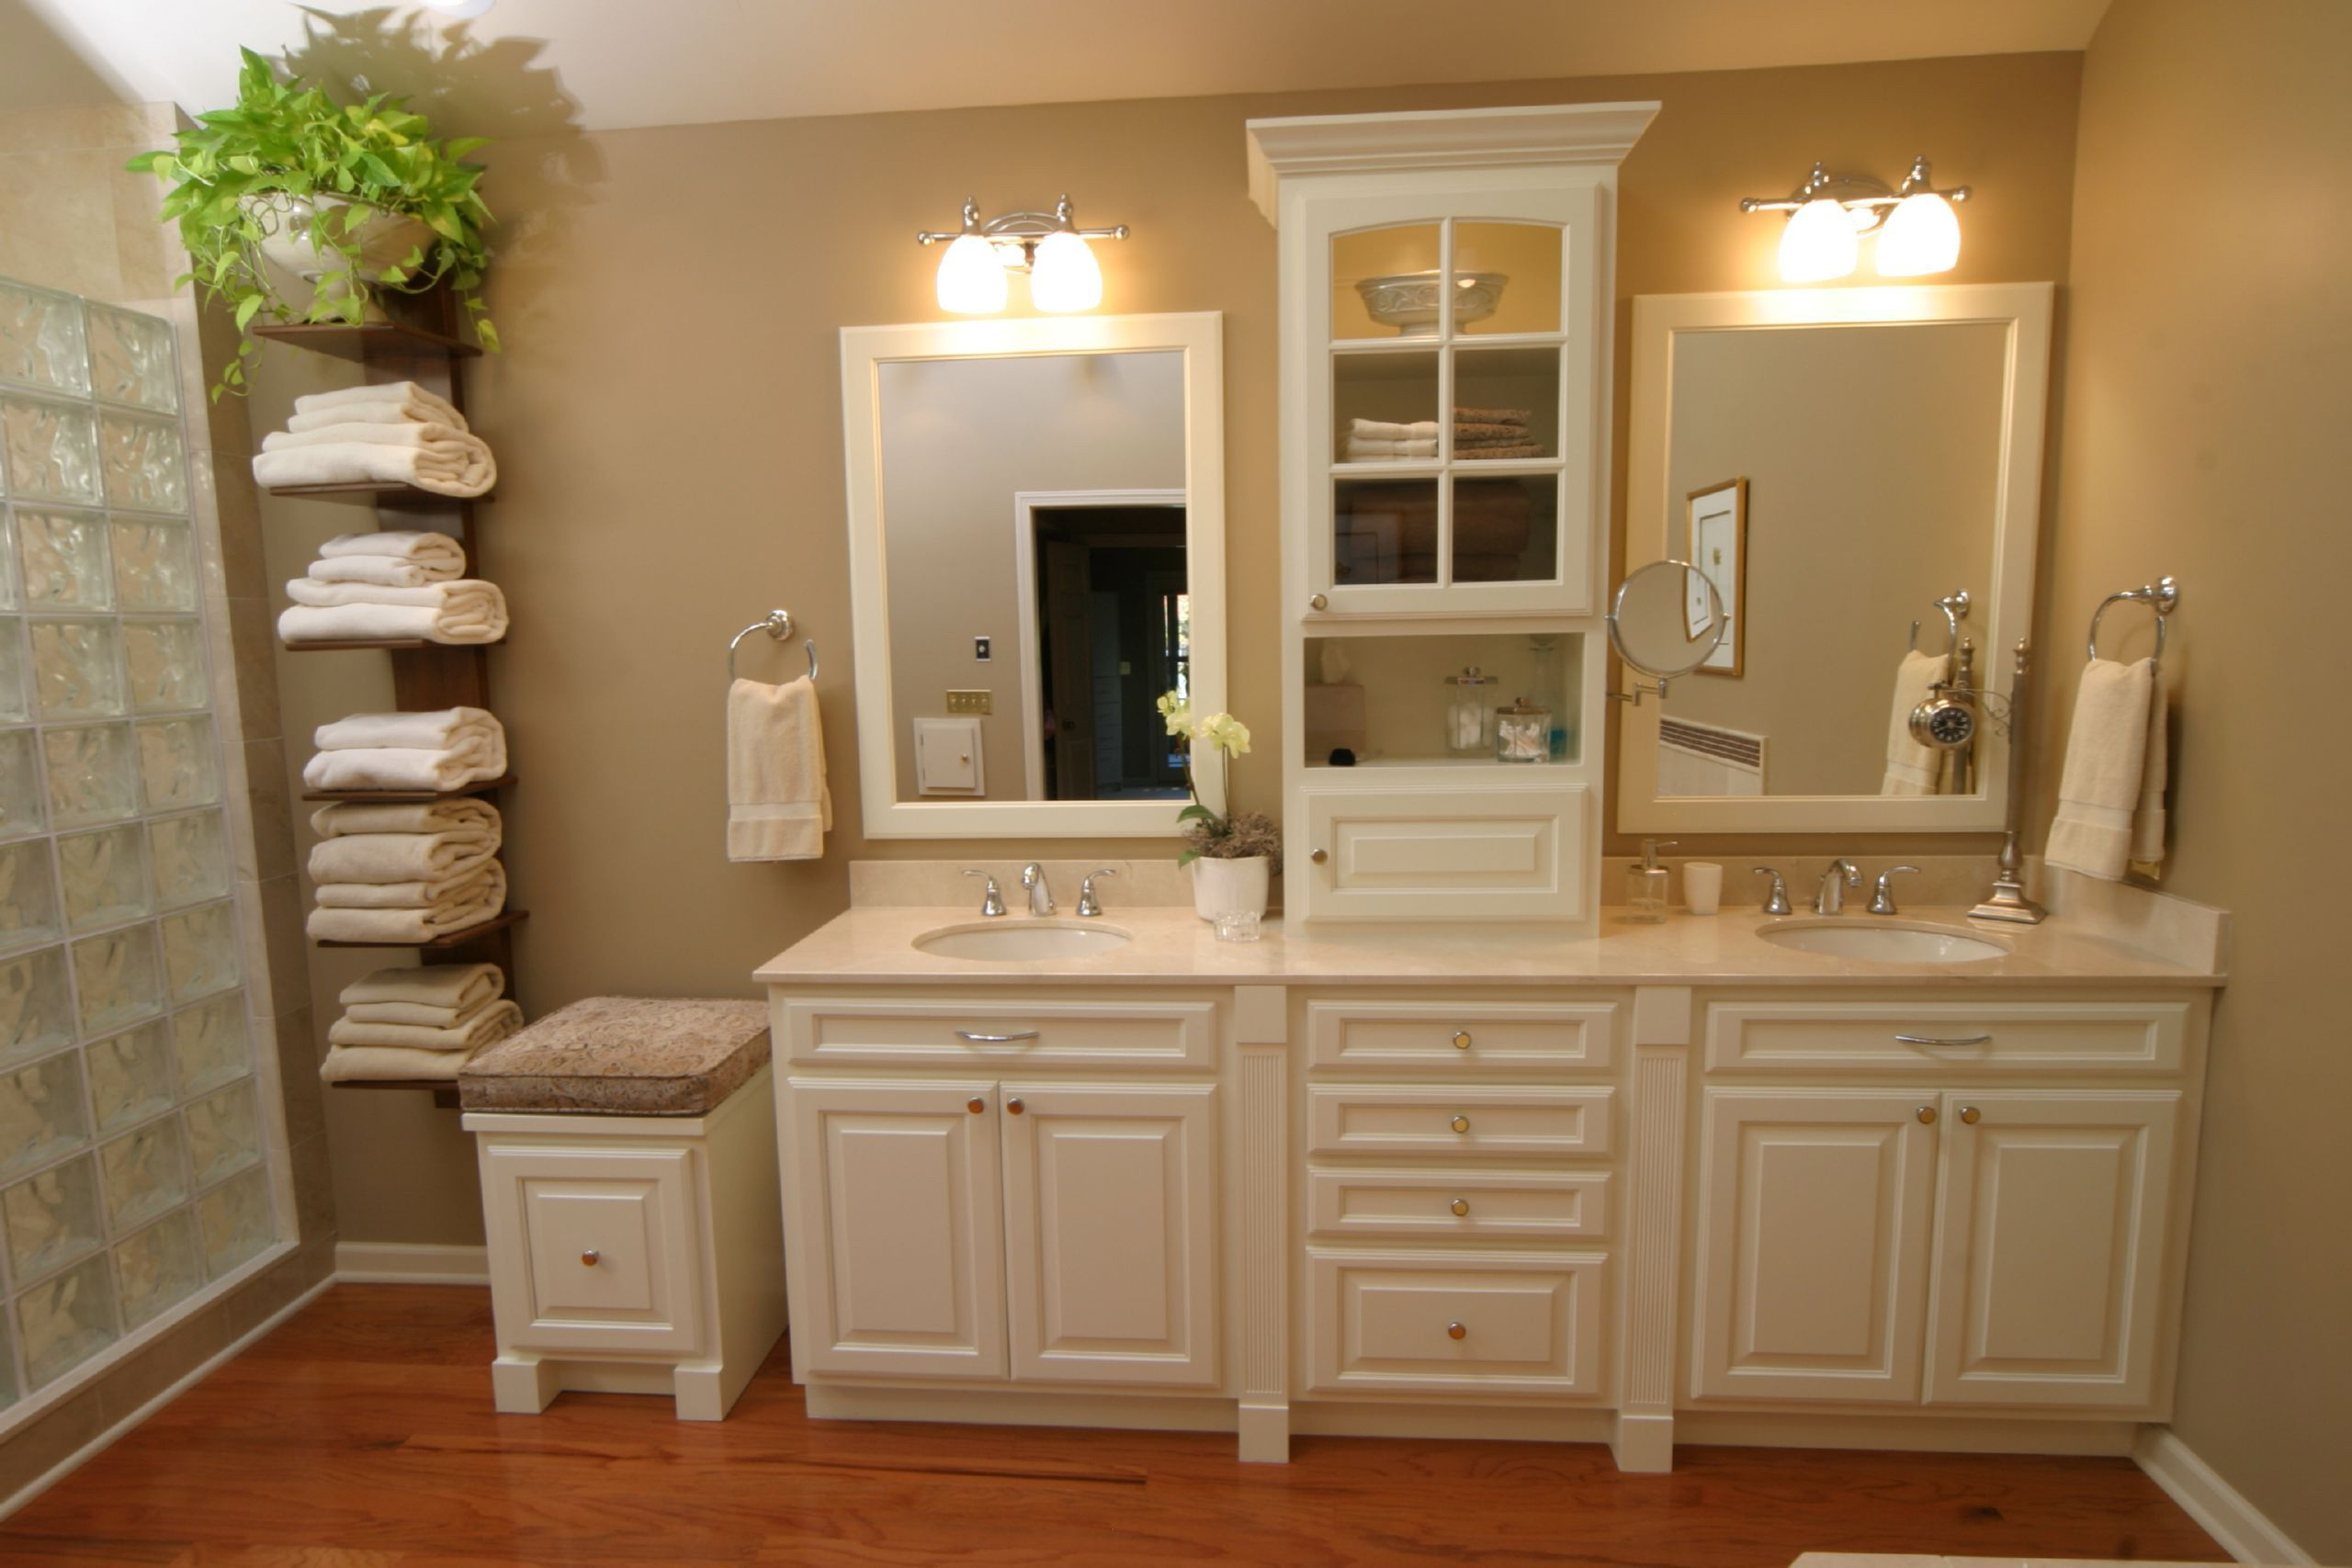 Storage Cabinet For Bathroom Countertop (With images ...